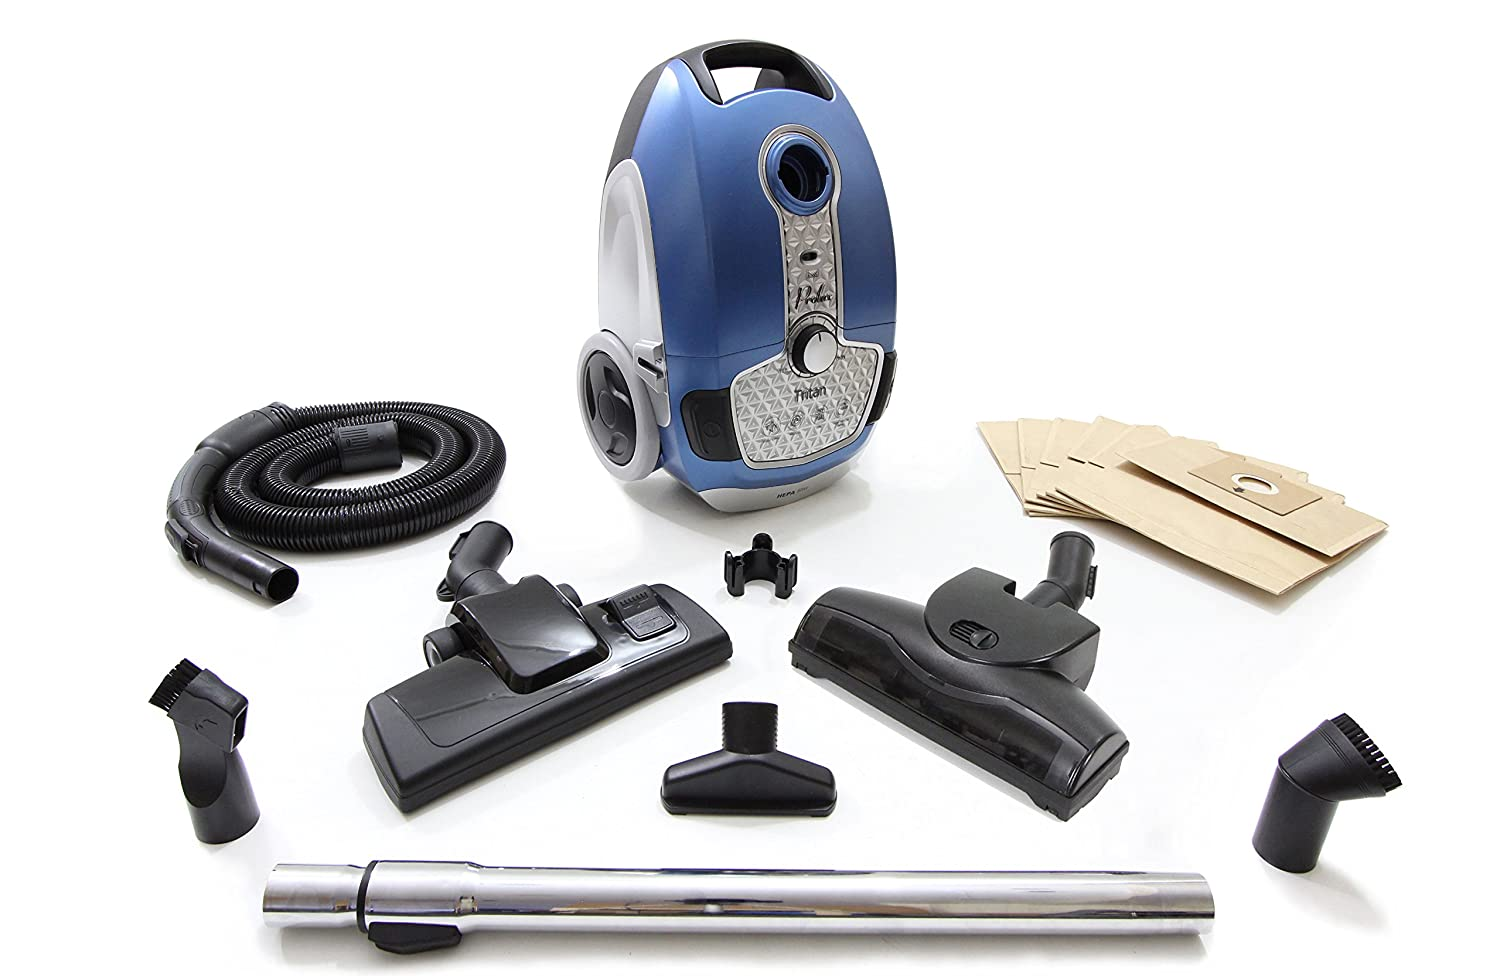 Amazon.com - Prolux Tritan Pet Turbo Canister Vacuum Cleaner HEPA Sealed Hard Floor Vacuum -